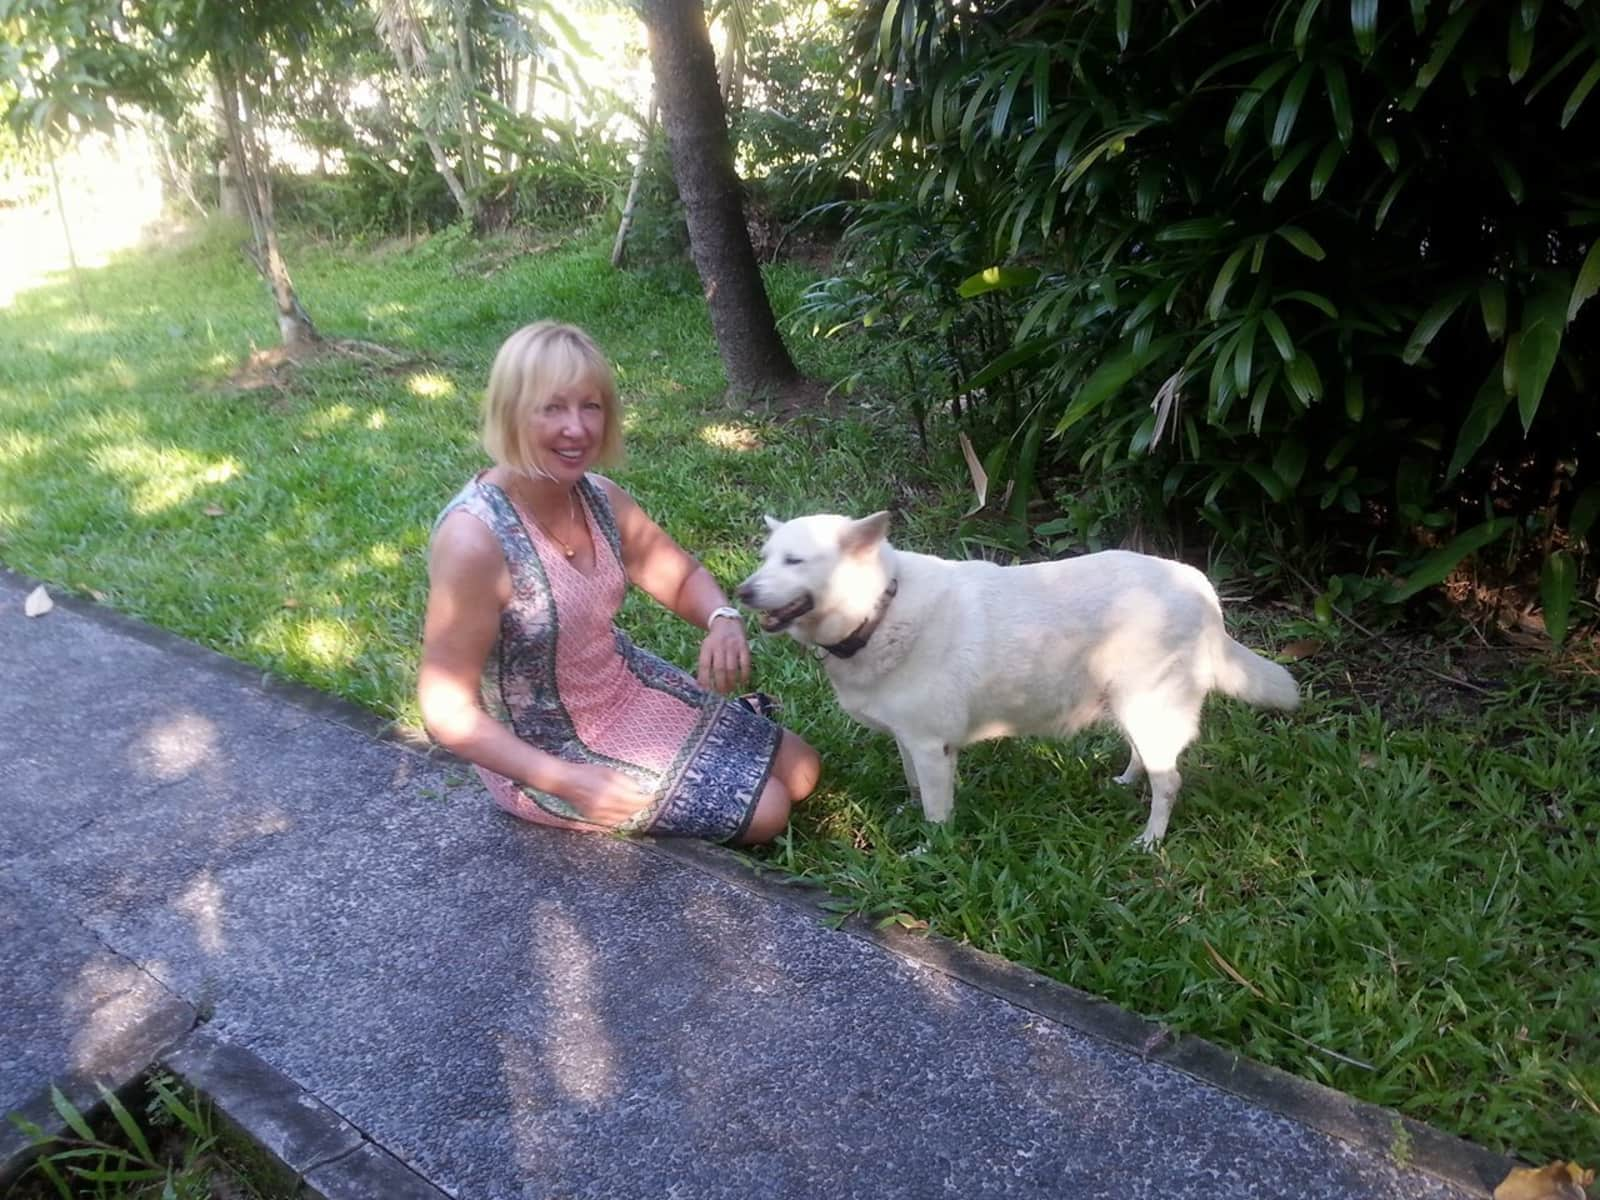 Susan from Sydney, New South Wales, Australia